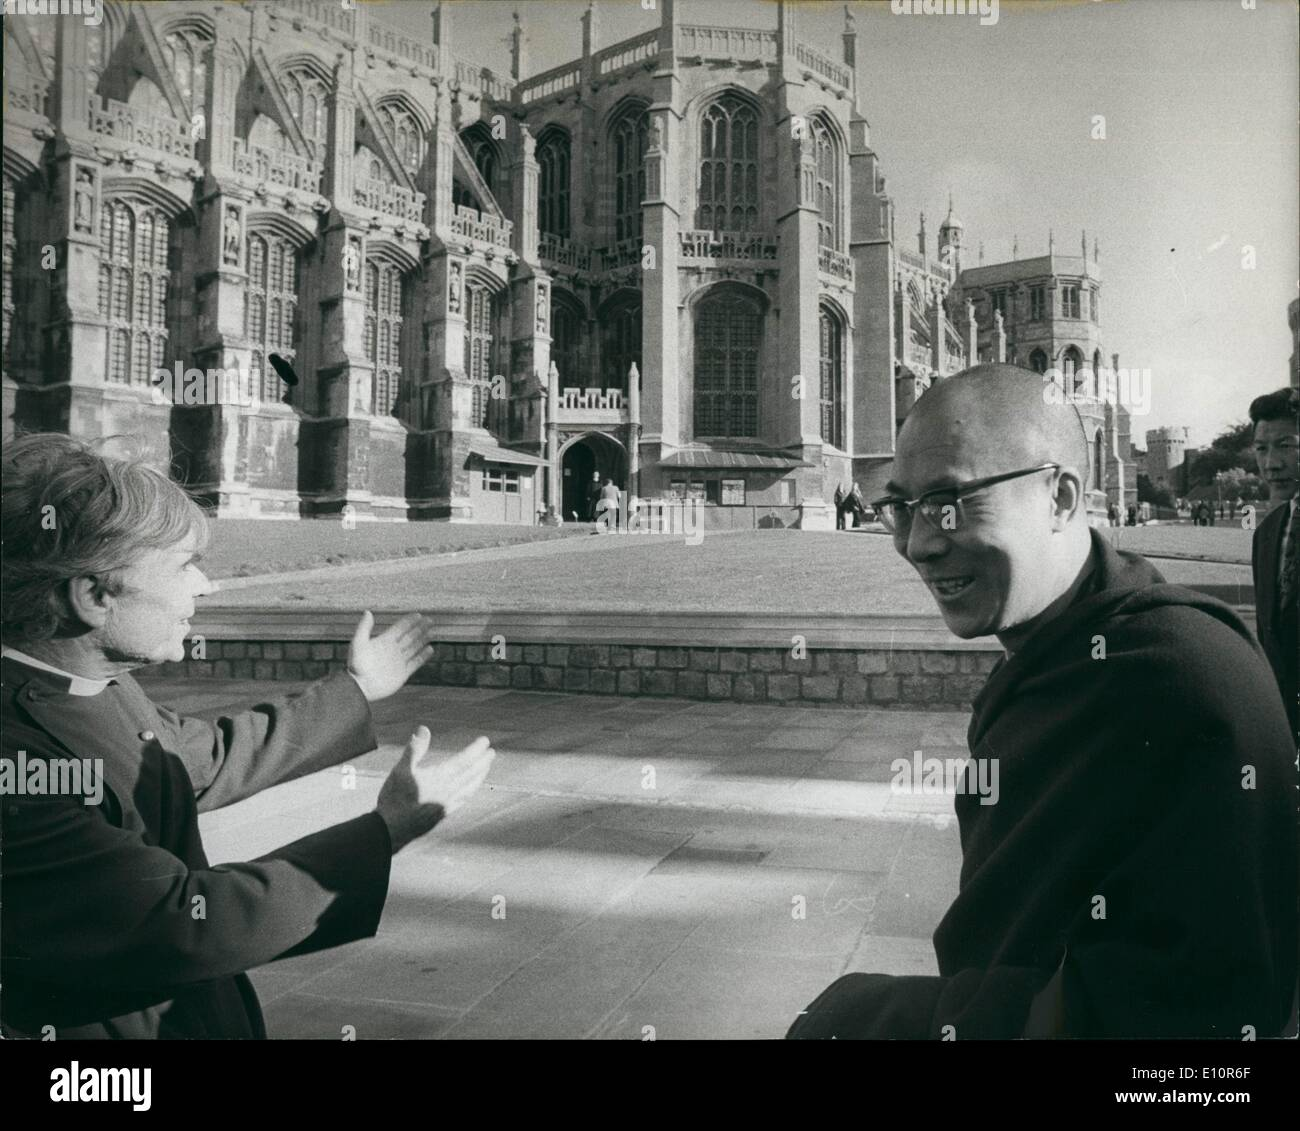 Oct. 10, 1973 - Dalai Lama At Windsor: The Dalai Lama, ''God-King'' of Tibet's Buddhists, yesterday attended Holy Communion in St. George's Chapel, Windsor. He was shown round Windsor Castle by Canon Stephen Verney, and later attended a conference of clergymen. The Dalai Lama, 38, who has been living in exile in India since the abortive uprising of his followers against the Chinese in Tibet in 1959, is on his trip to Britain. Photo shows The Dalai Lama being conducted round Windsor Castle yesterday by Canon Stephen Verney - Stock Image